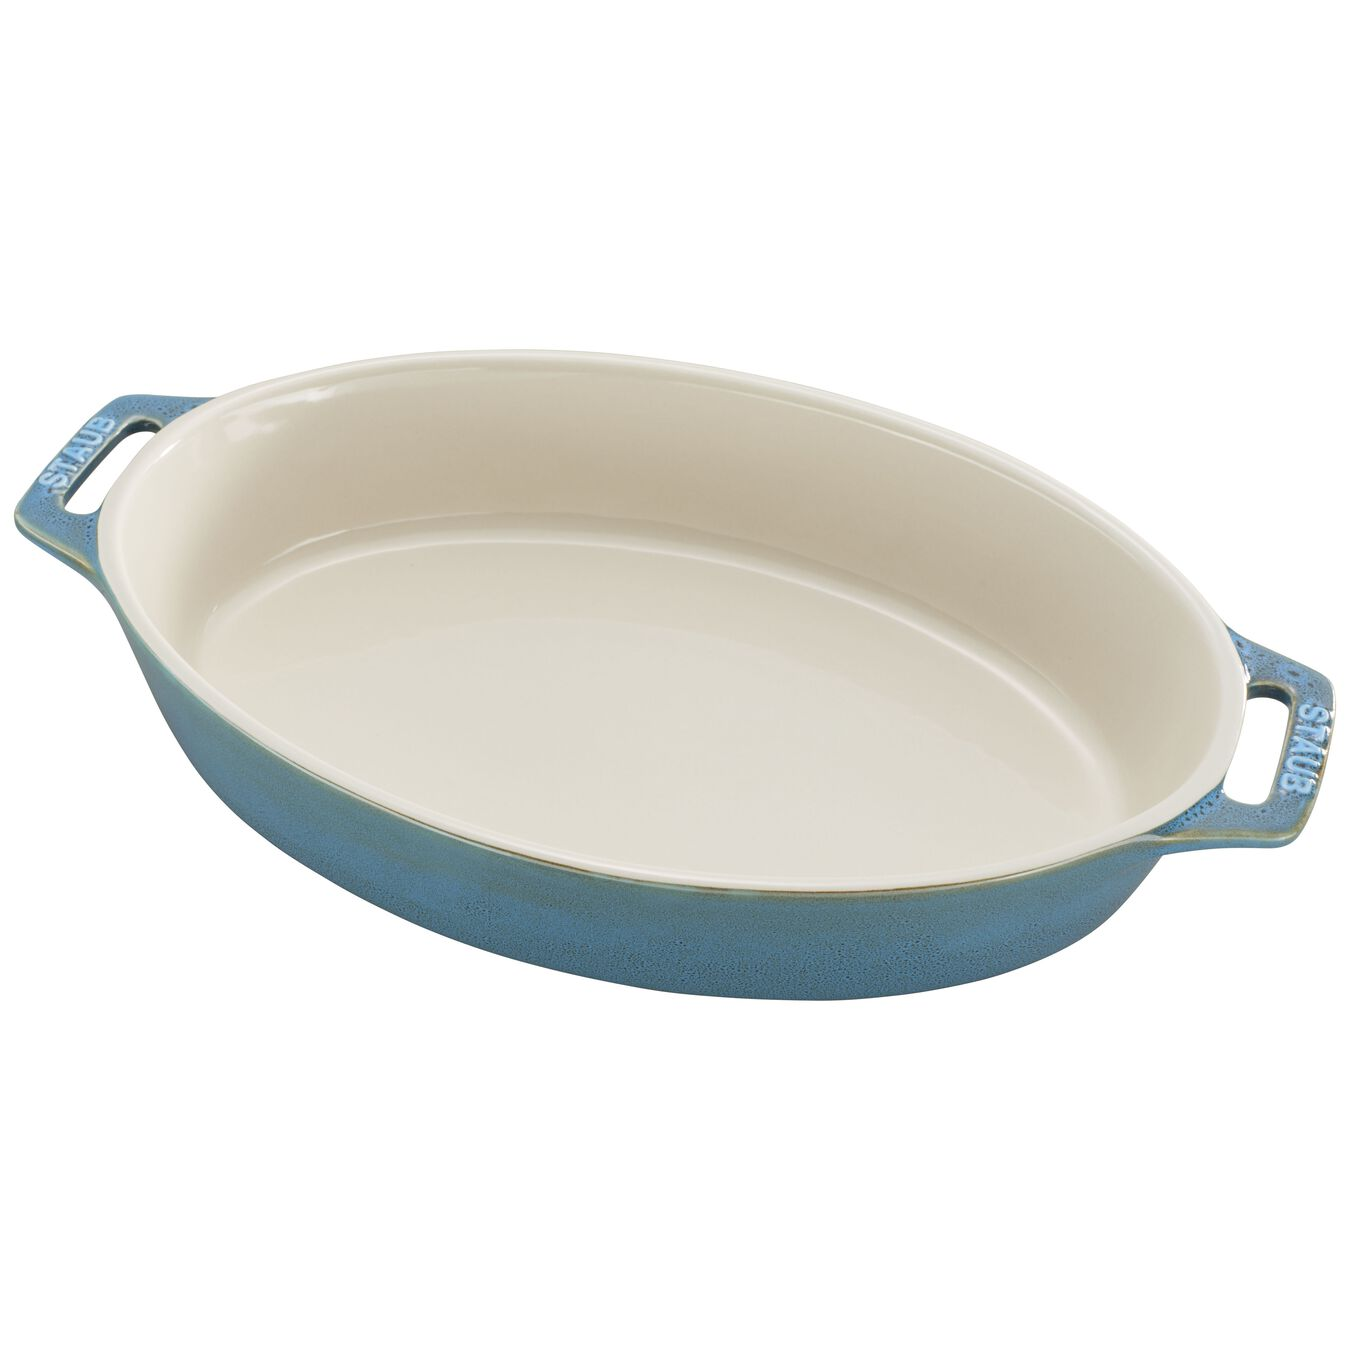 11-inch Oval Baking Dish - Rustic Turquoise,,large 2